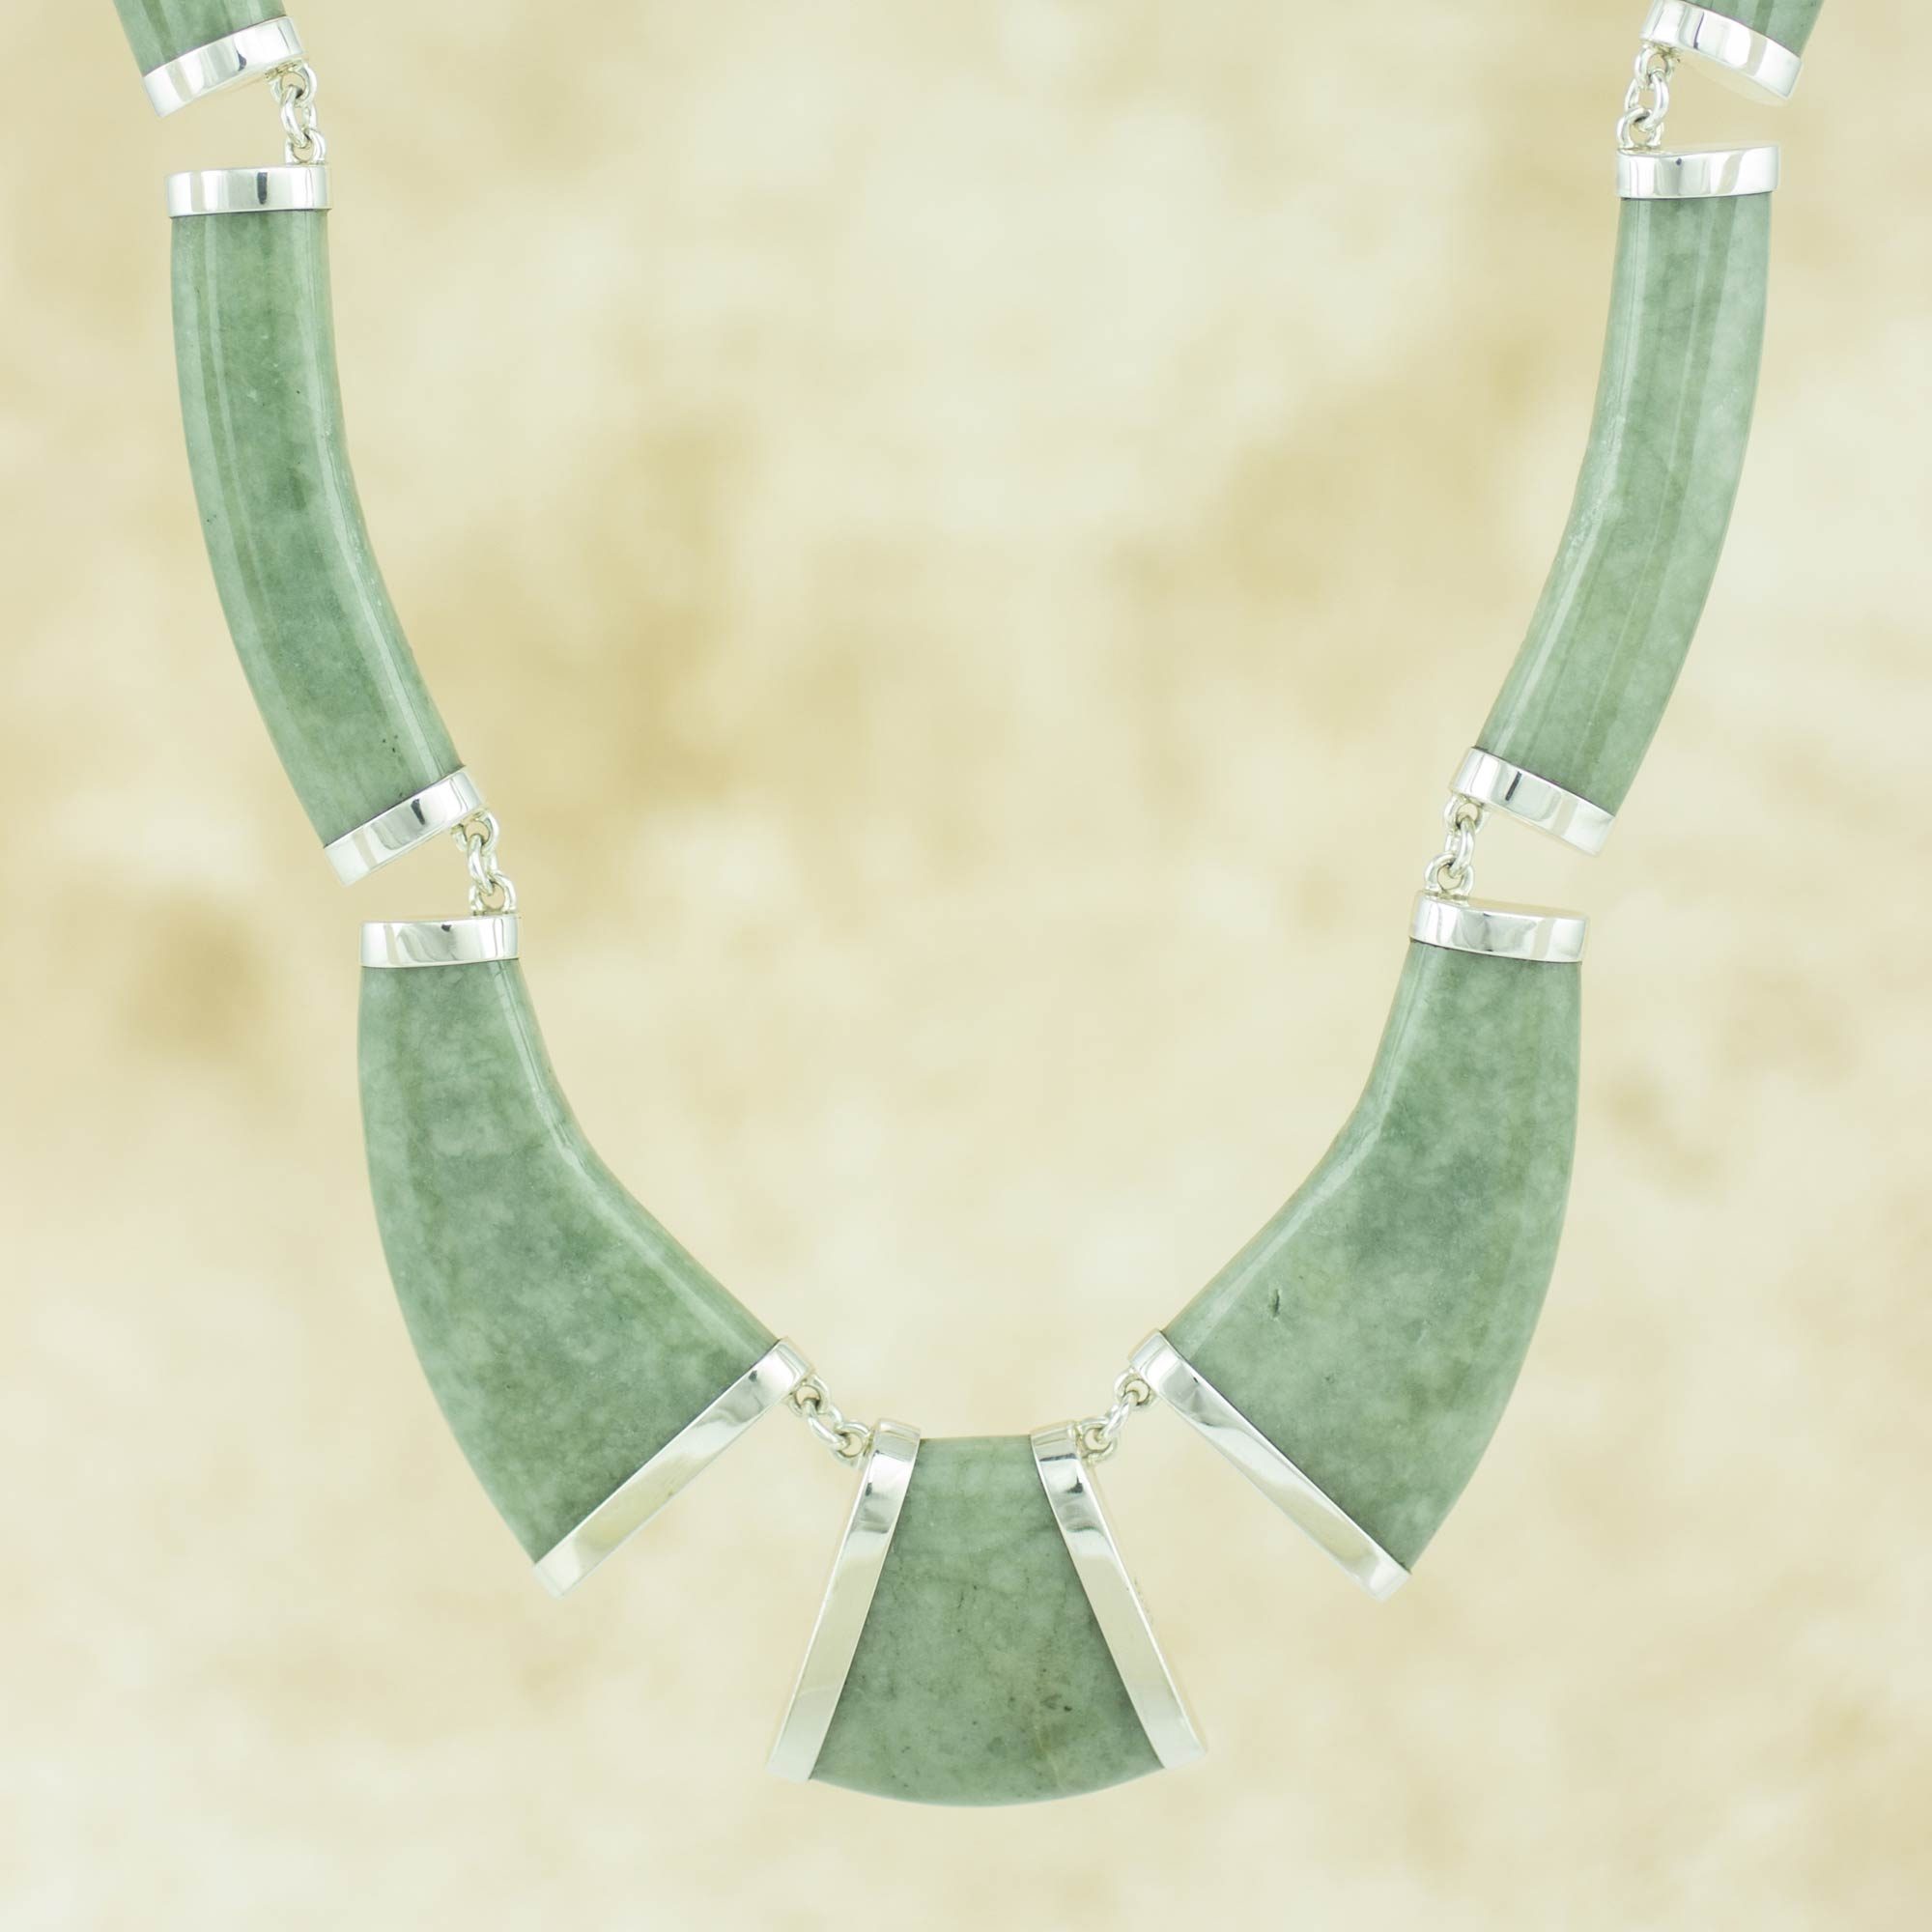 hatori glowing il zoom hatoris necklace listing jade fullxfull s chise